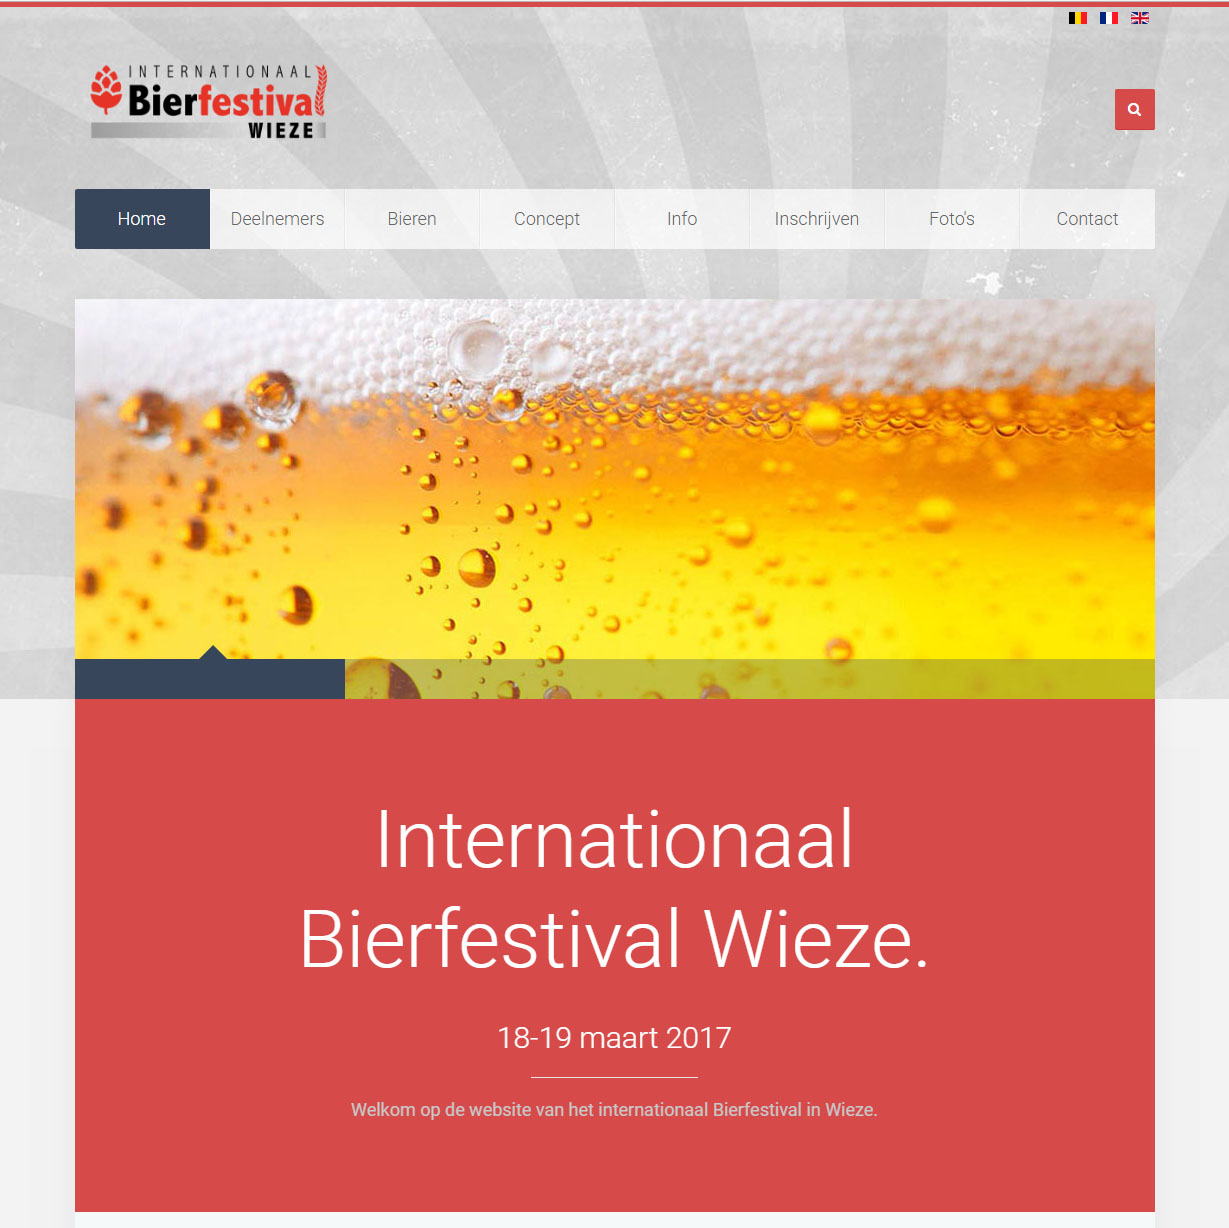 Website Internationaal Wieze Bierfestival